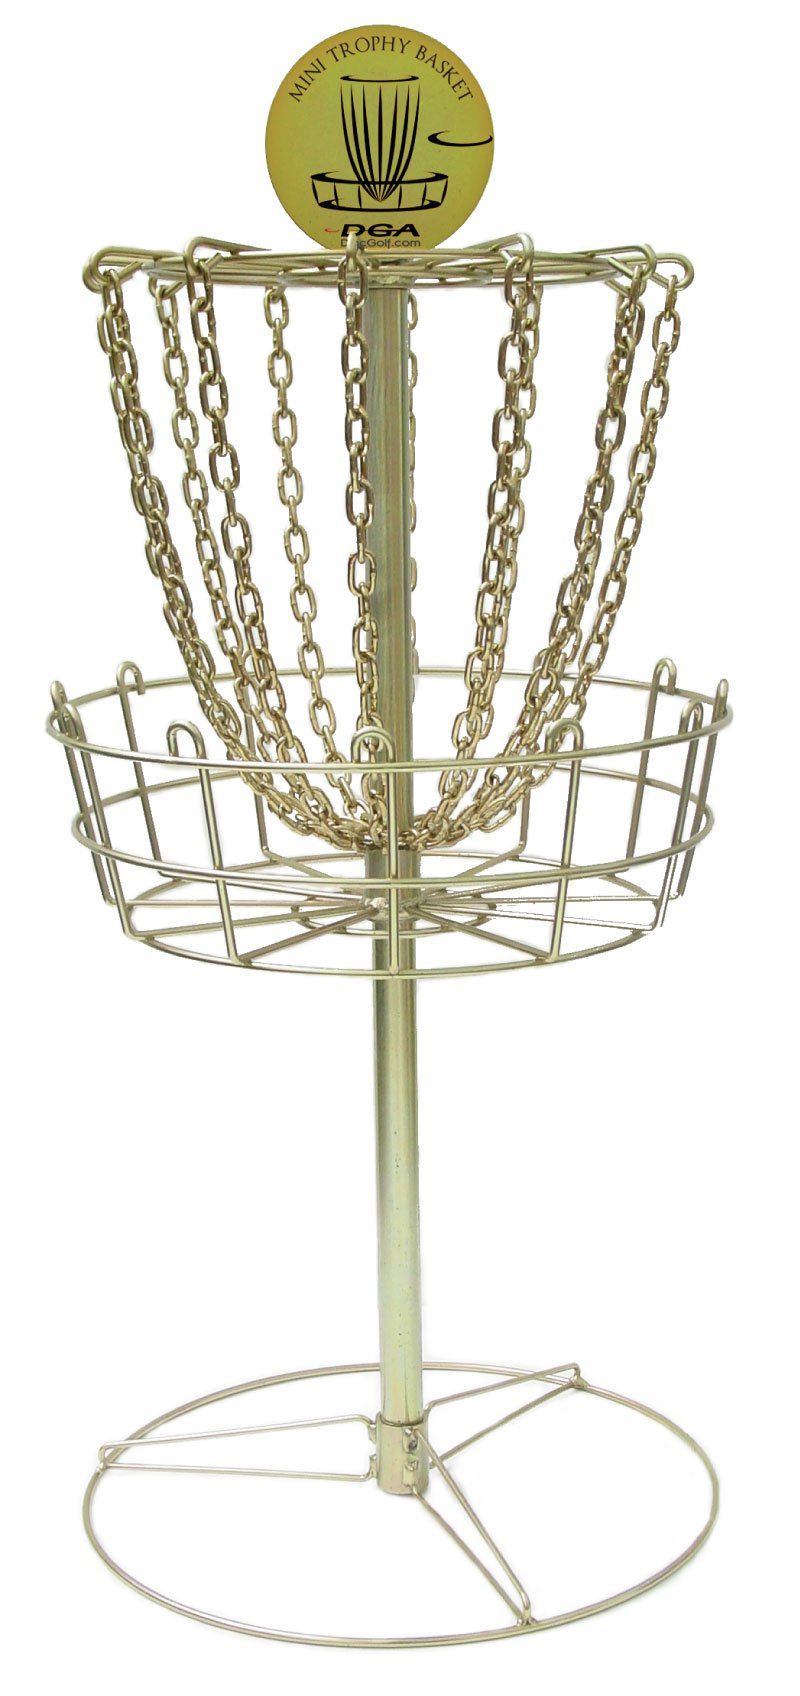 DGA Mini Trophy Disc Golf Basket (Gold) by DGA